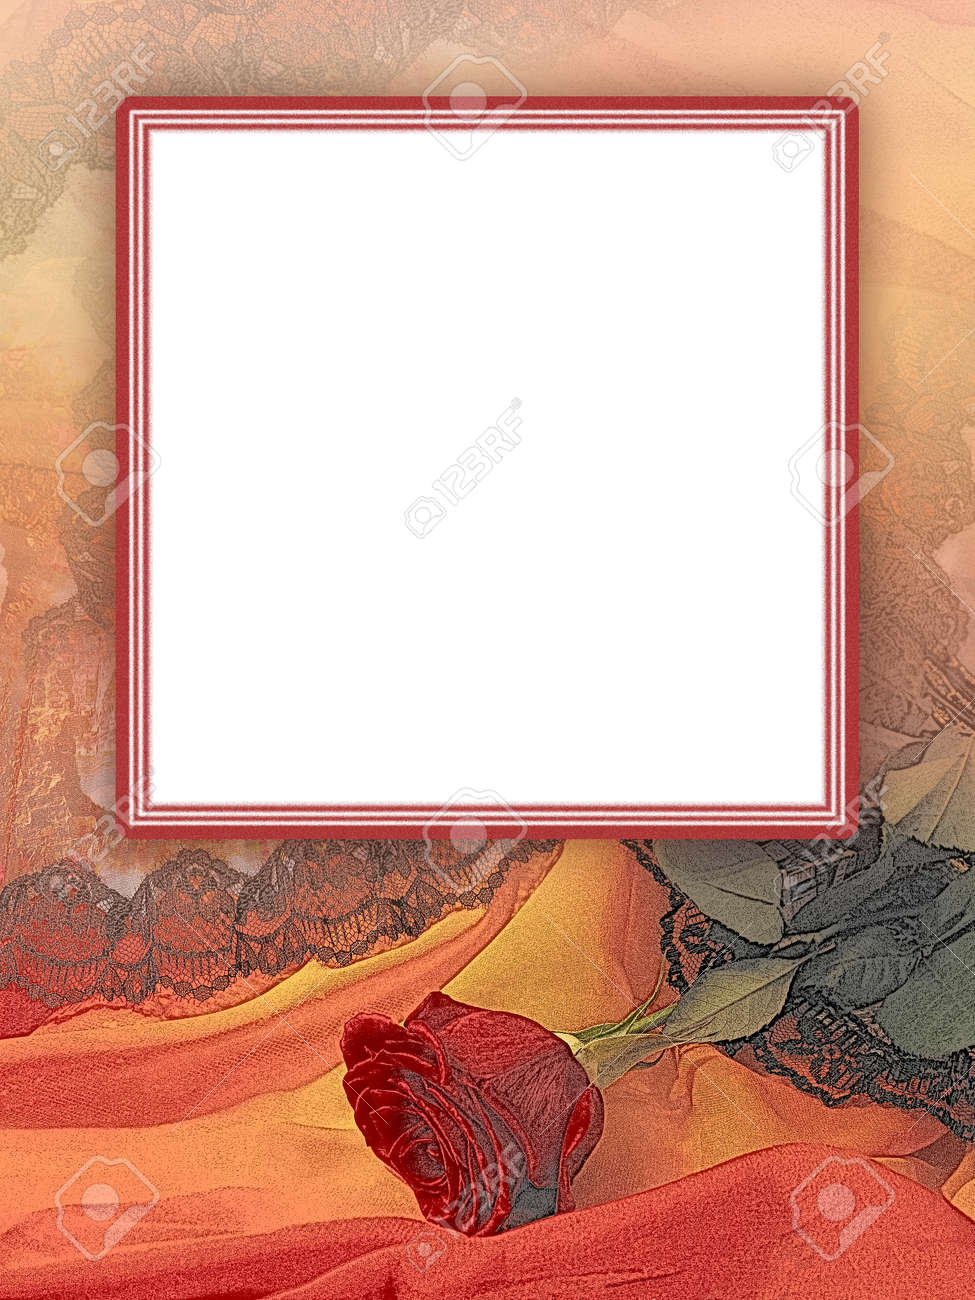 Vintage template with red rose. White square text box with elegant frame. Romantic mock up concept for greeting card, postcard, website, banner, presentation, poster, photo album, book page - 164138564